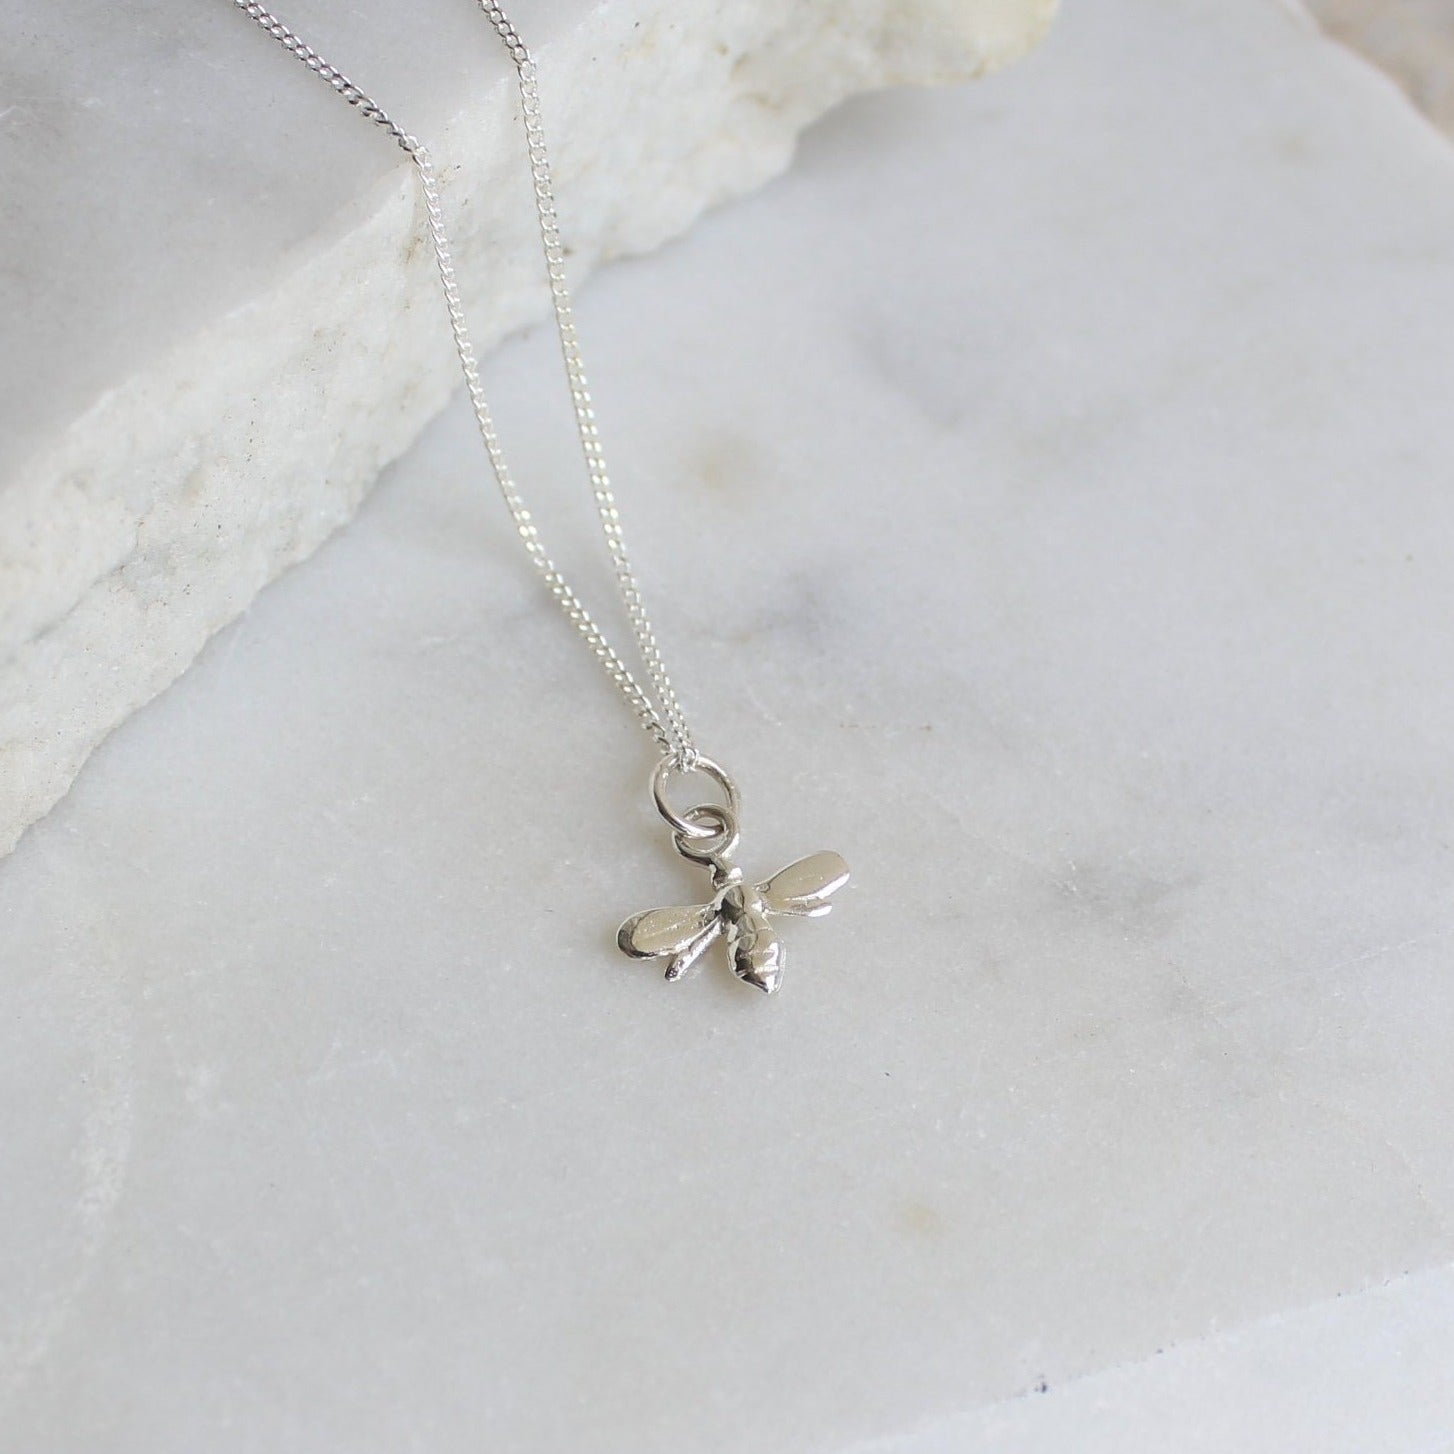 Tiny Bee Charm Necklace Sterling Silver